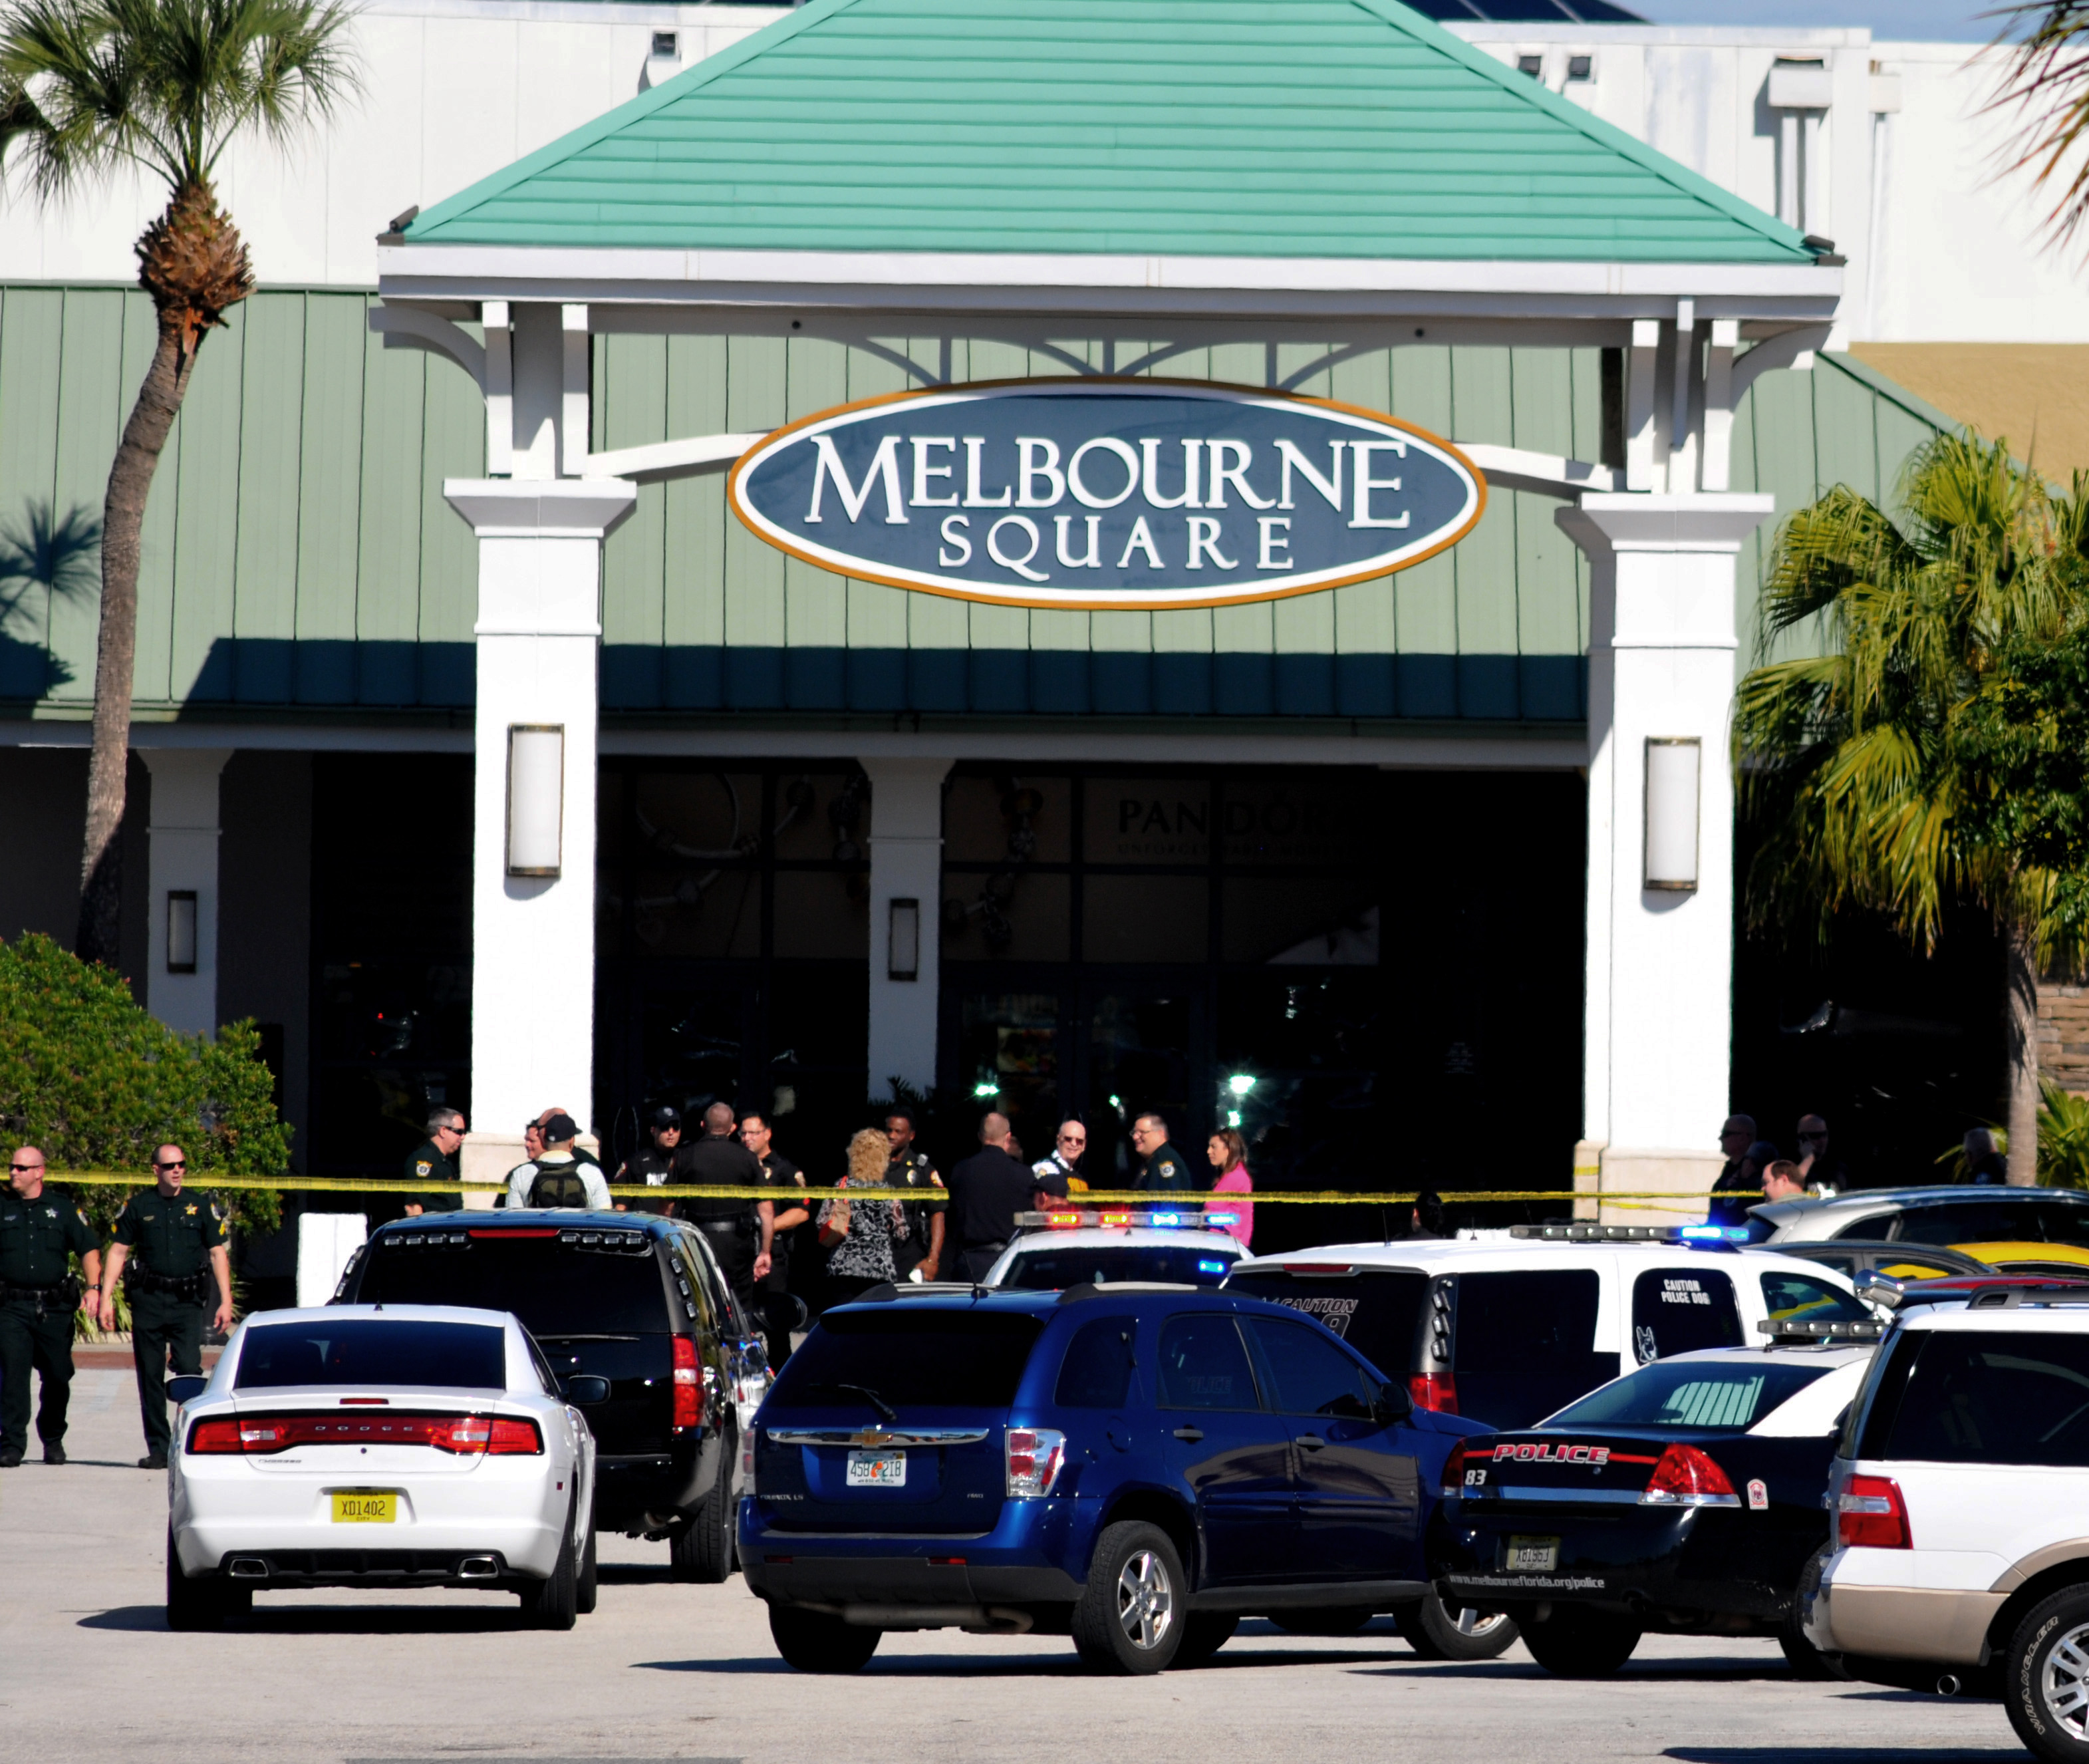 Emergency personnel respond to the scene of a shooting at the Melbourne Square Mall on Jan 17, 2015 in Melbourne, Fla.